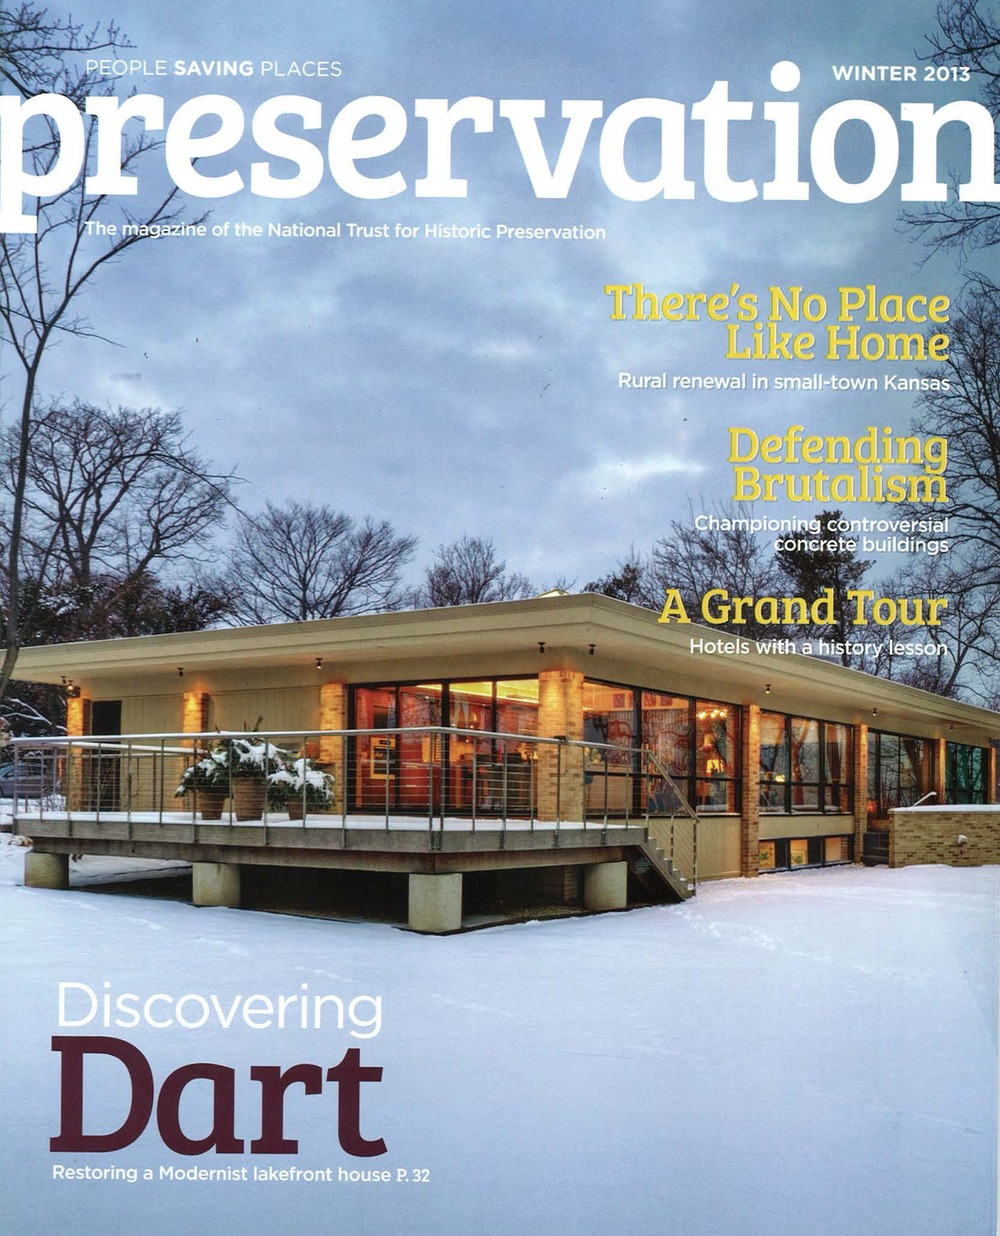 2013 Preservation Magazine Winter 2013 1.jpg